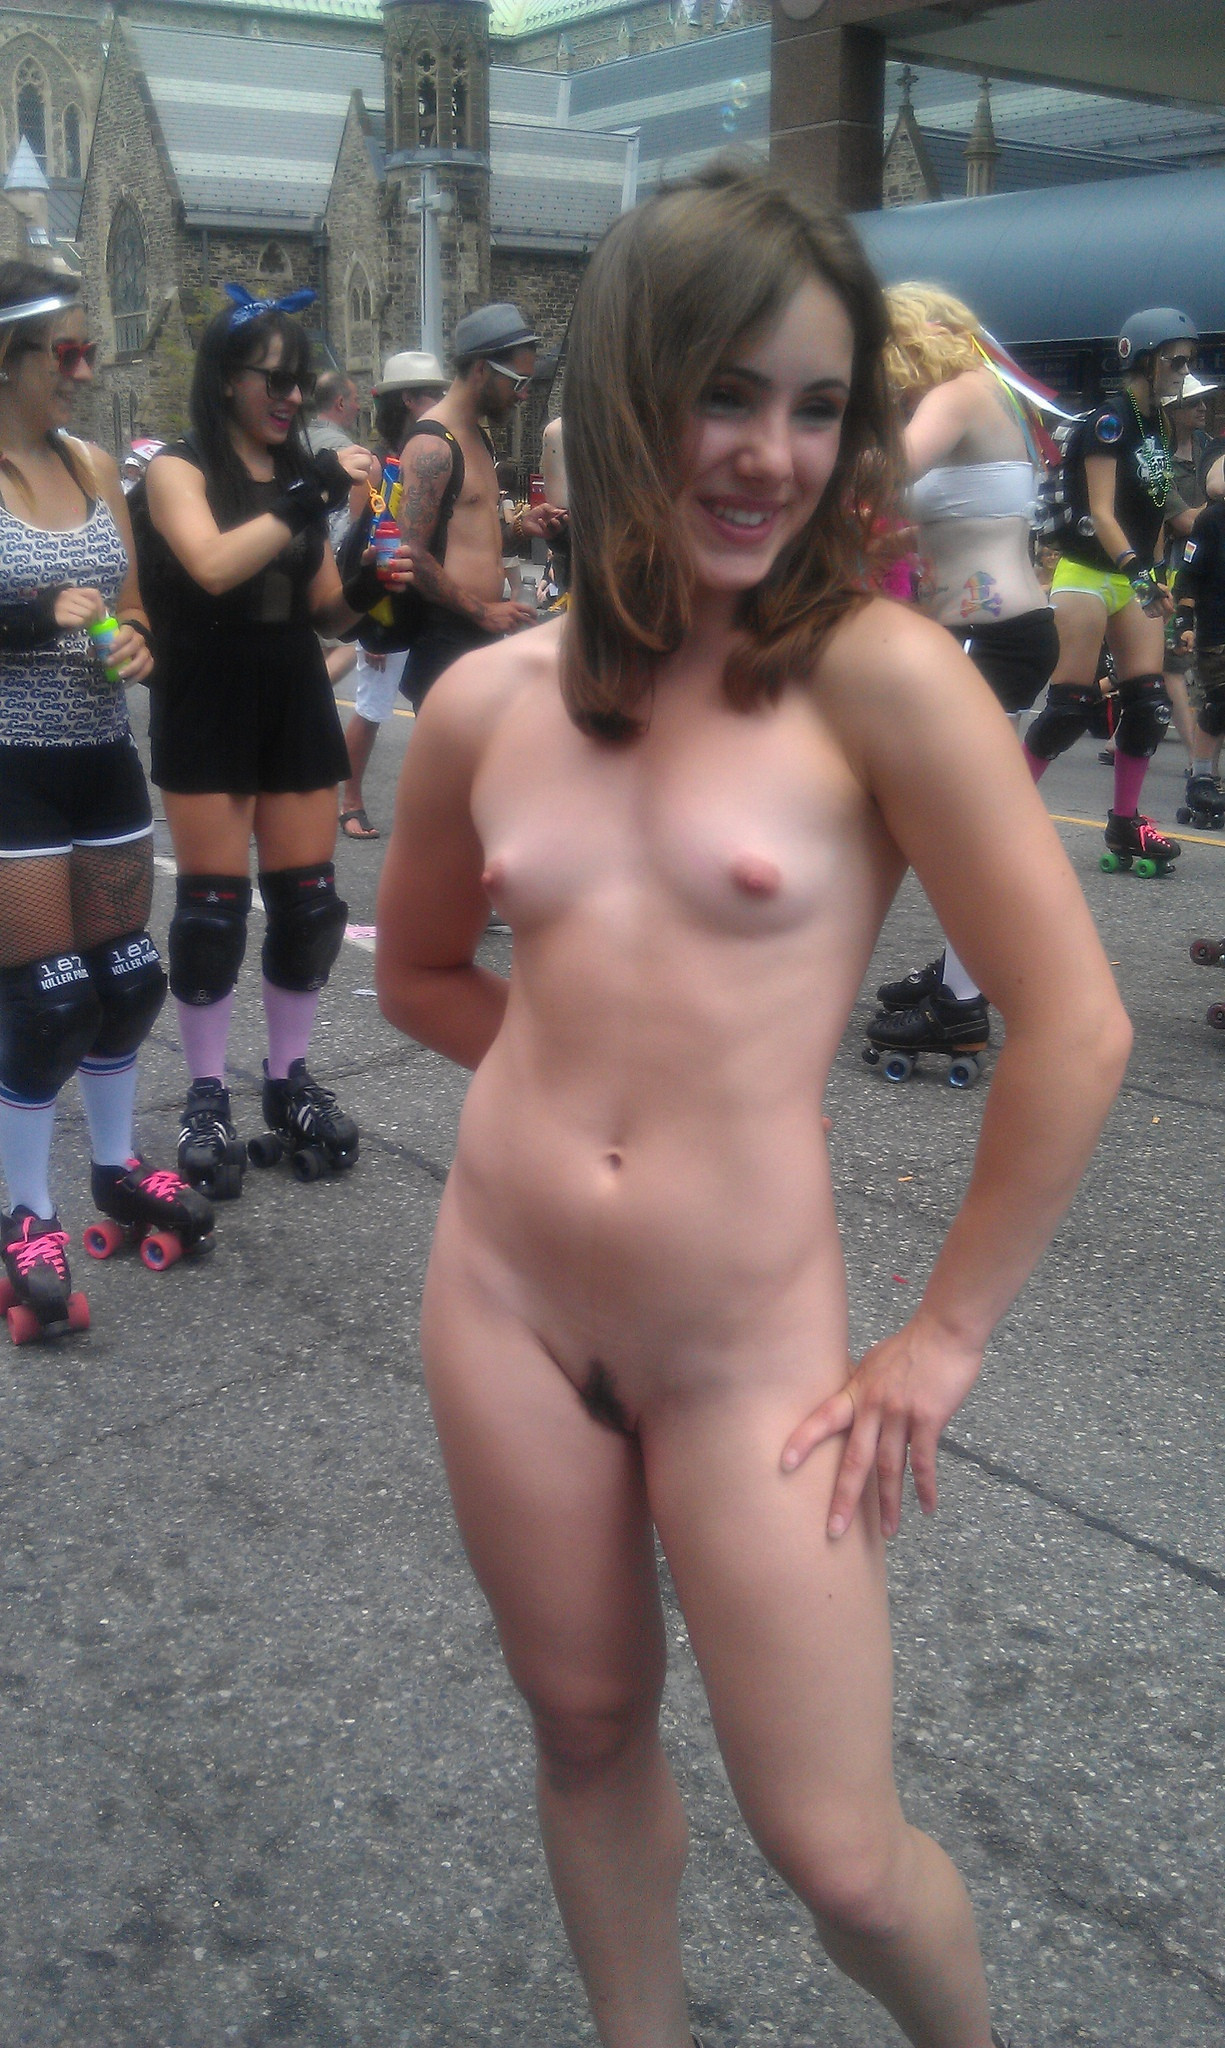 Naked girls in public pics